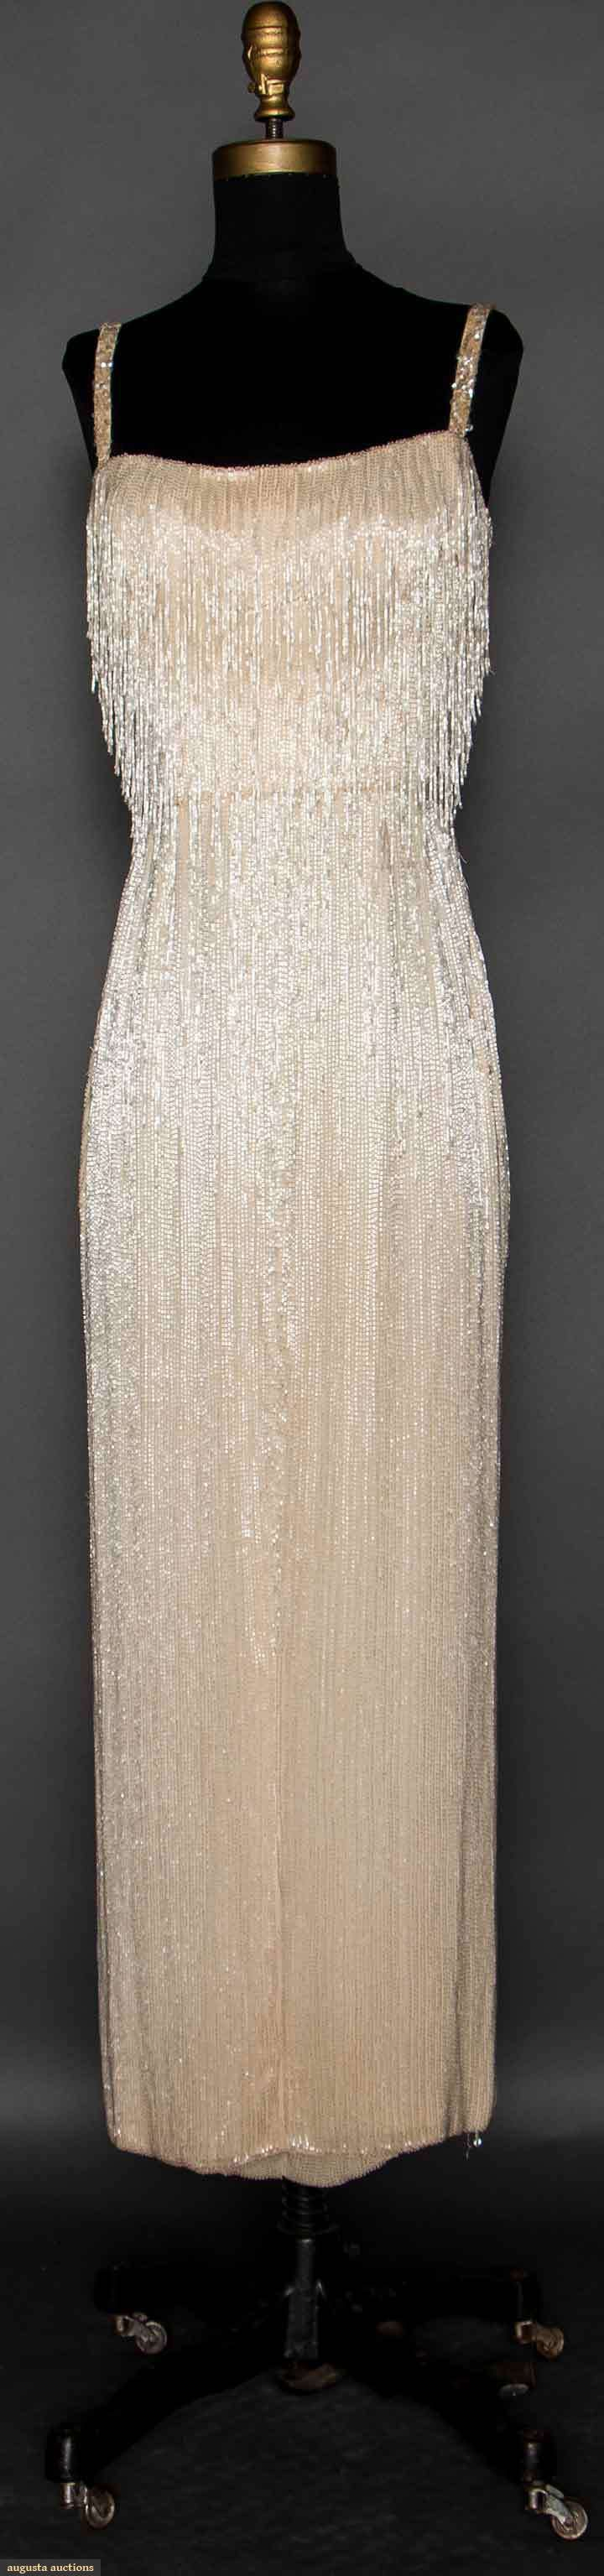 HATTIE CARNEGIE BEAD ENCRUSTED GOWN, LATE 1950s White silk sheath completely covered in rows of small, white bugle beads, neckline to hip w/ rows of beaded fringe, irridescent sequin straps, CF kick pleat, labeled